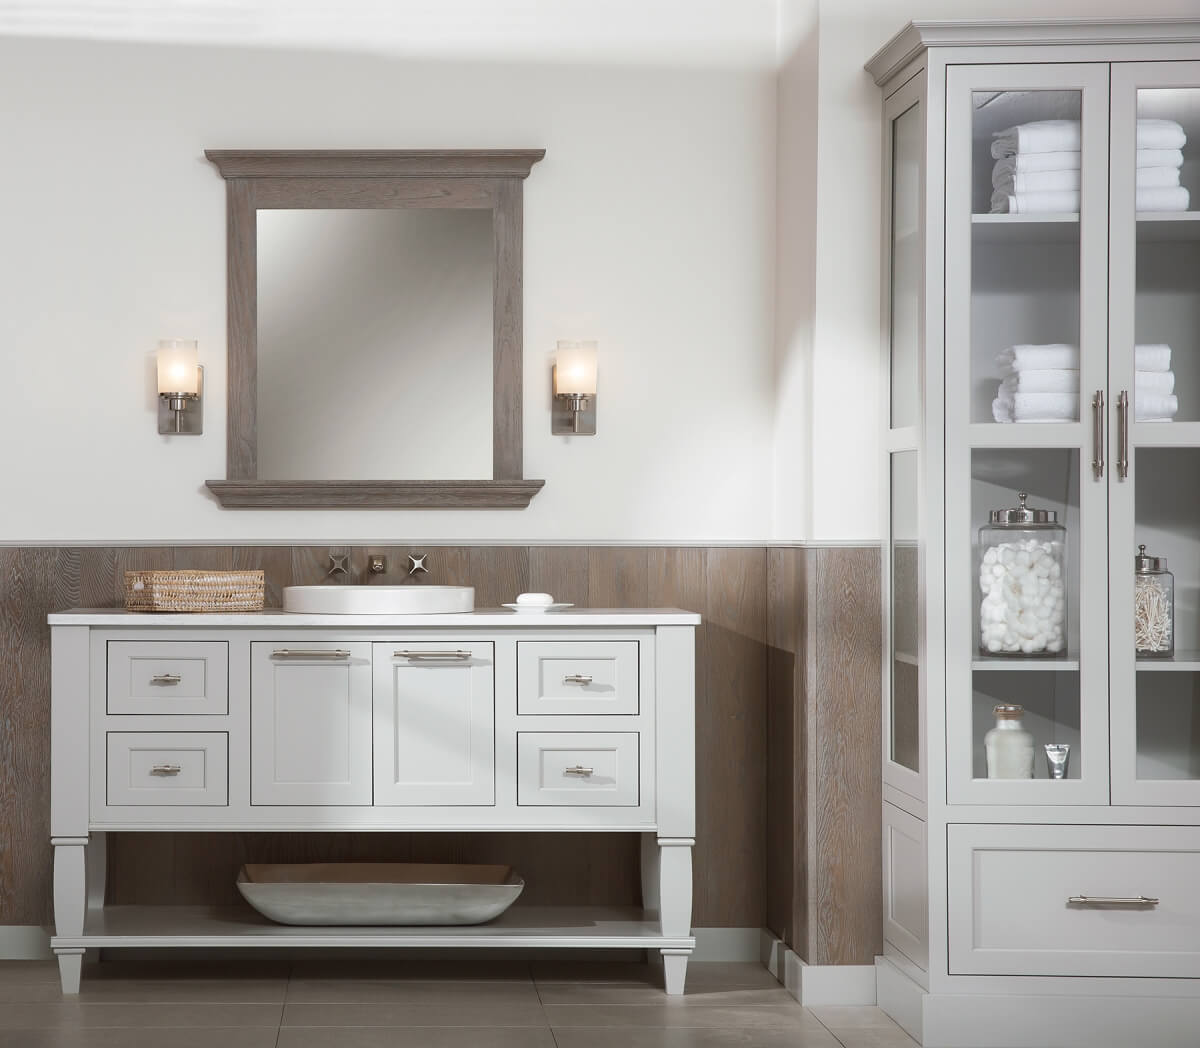 A lake shore inspired bathroom with a modern farmhouse styled bathroom vanity in a light gray cabinet paint color.